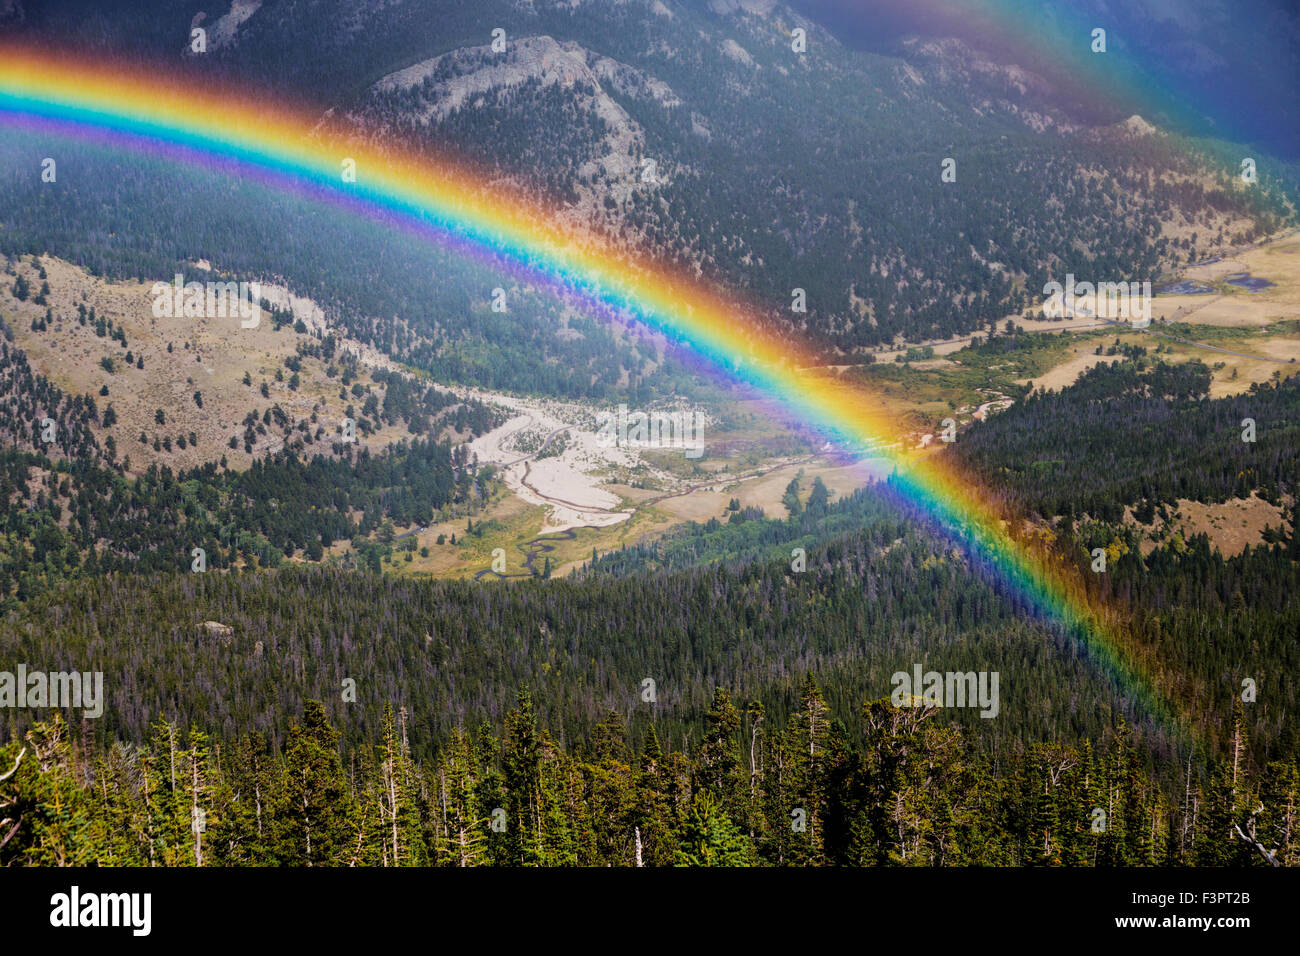 Full; vibrant; rainbow; Rainbow Curve; Rocky Mountain National Park; Colorado; USA Stock Photo